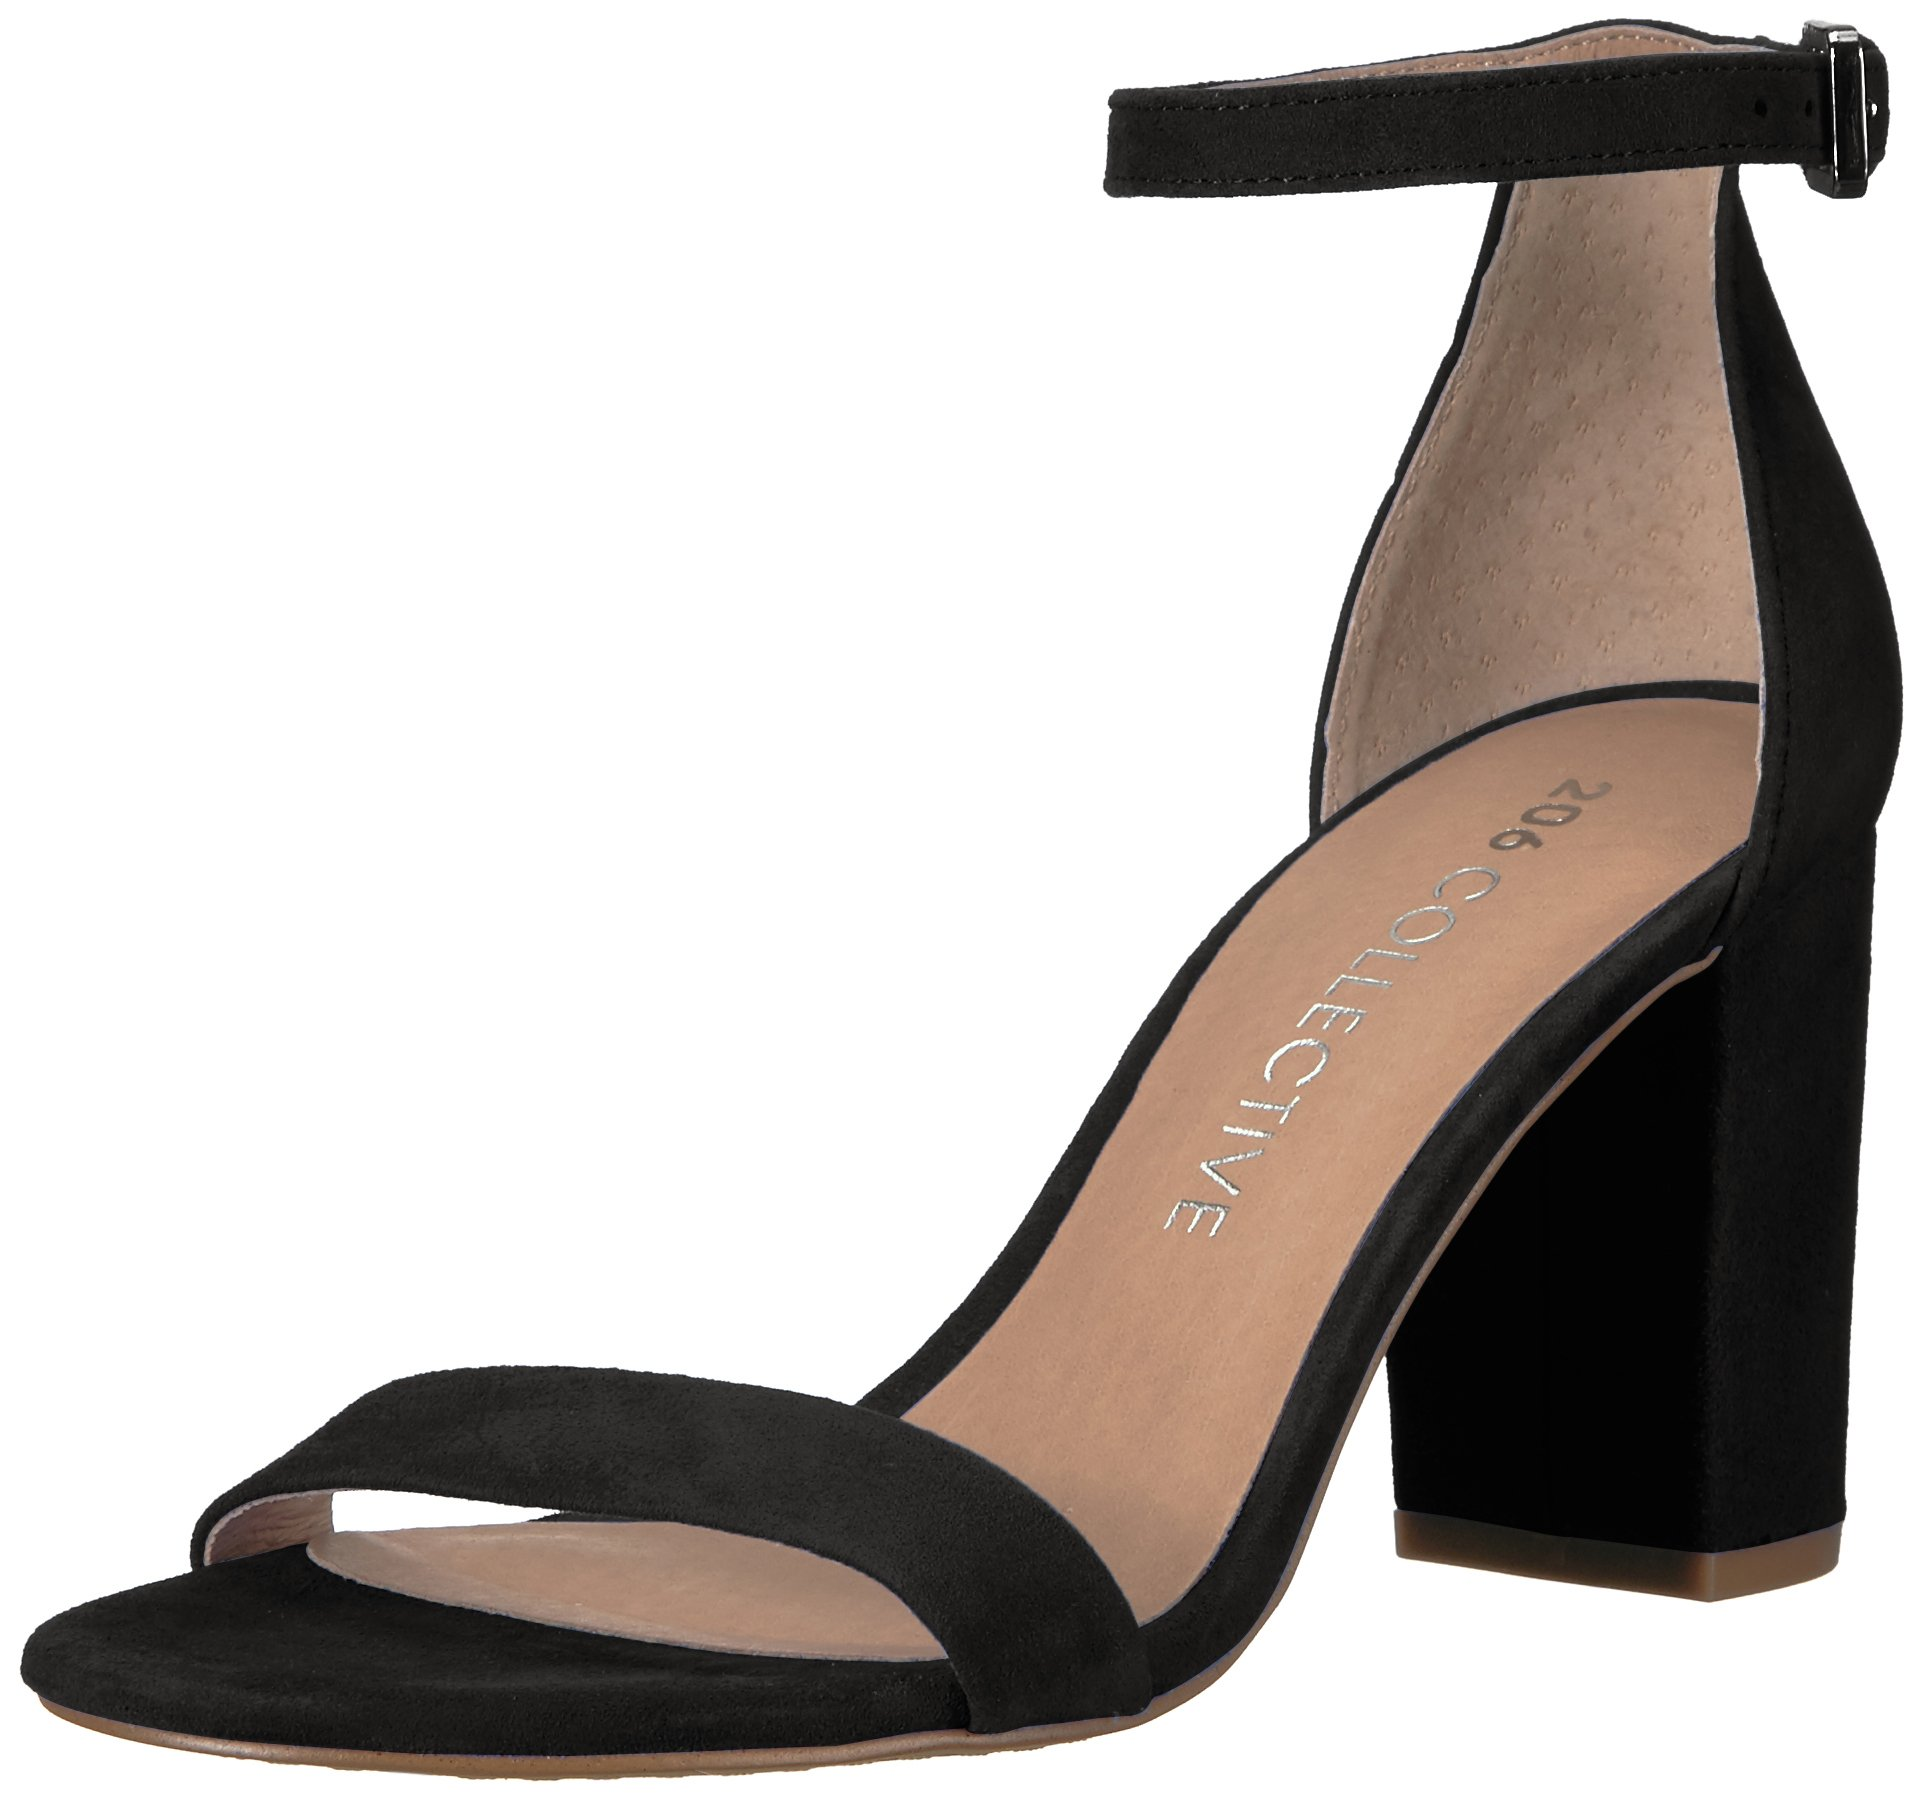 206 Collective Women's Loyal Block Heel Dress High Heeled Sandal, Black Suede, 6 B US